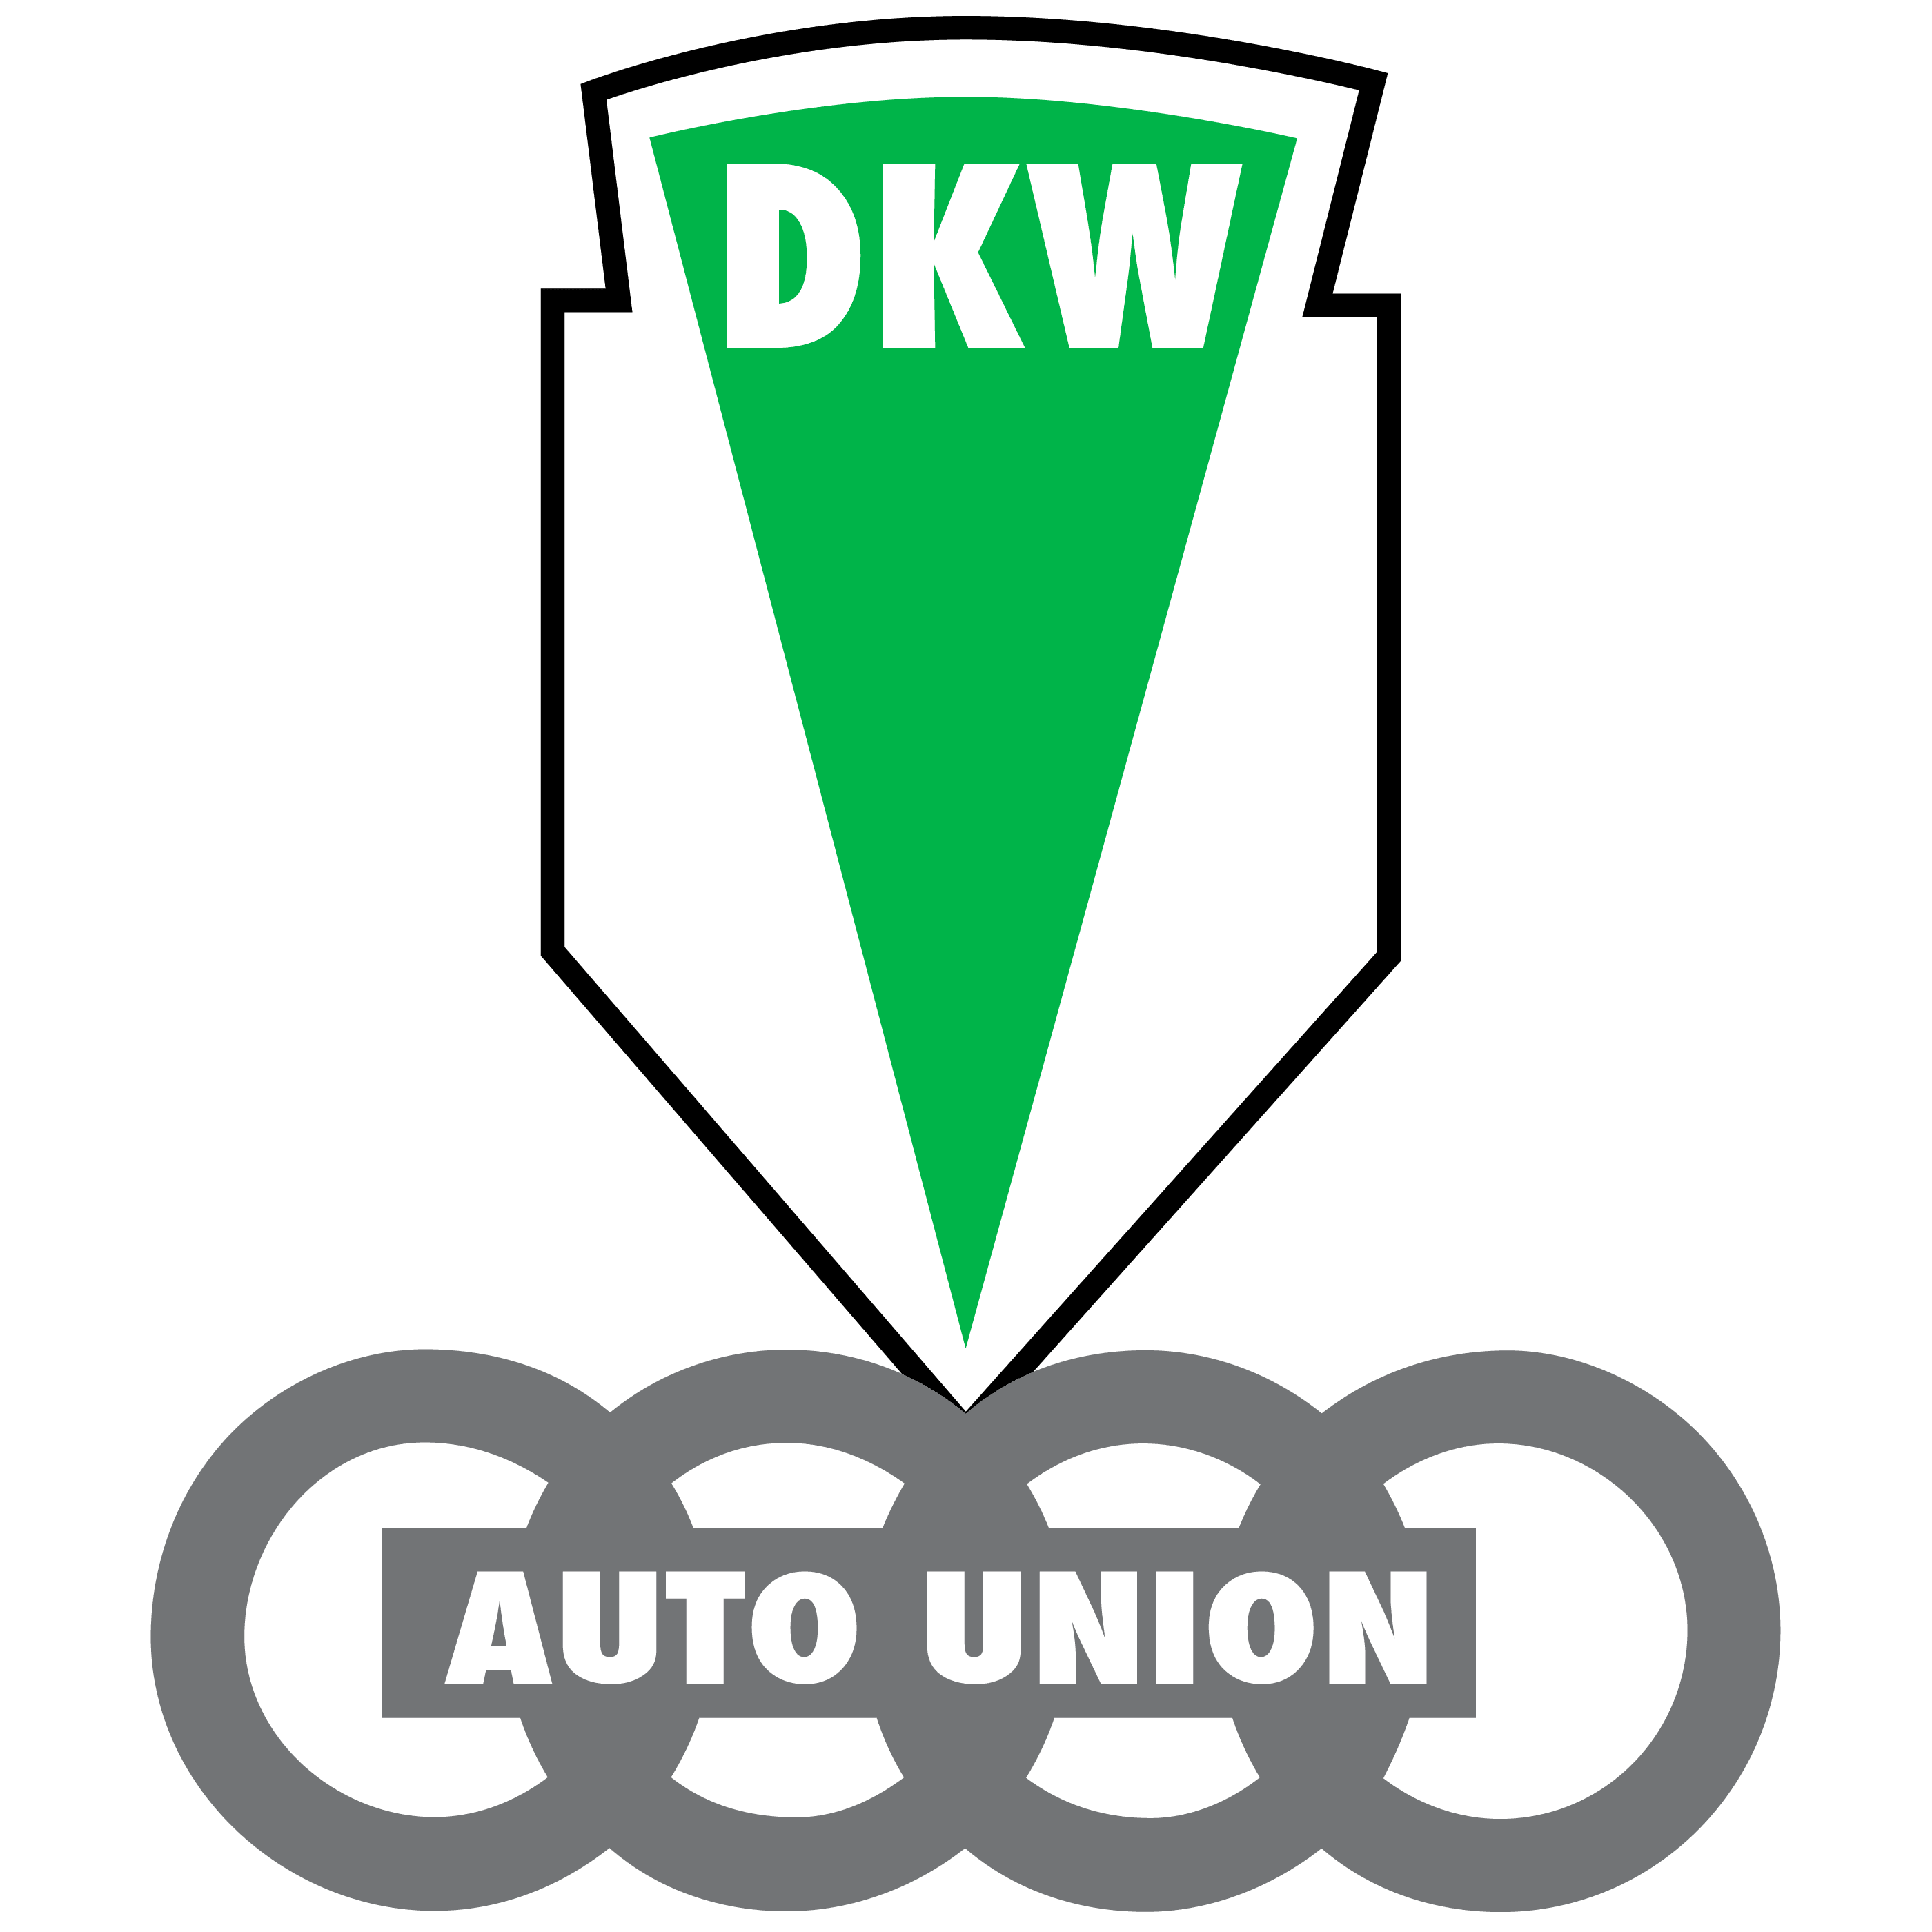 DKW Logo: History, Meaning | Motorcycle Brands